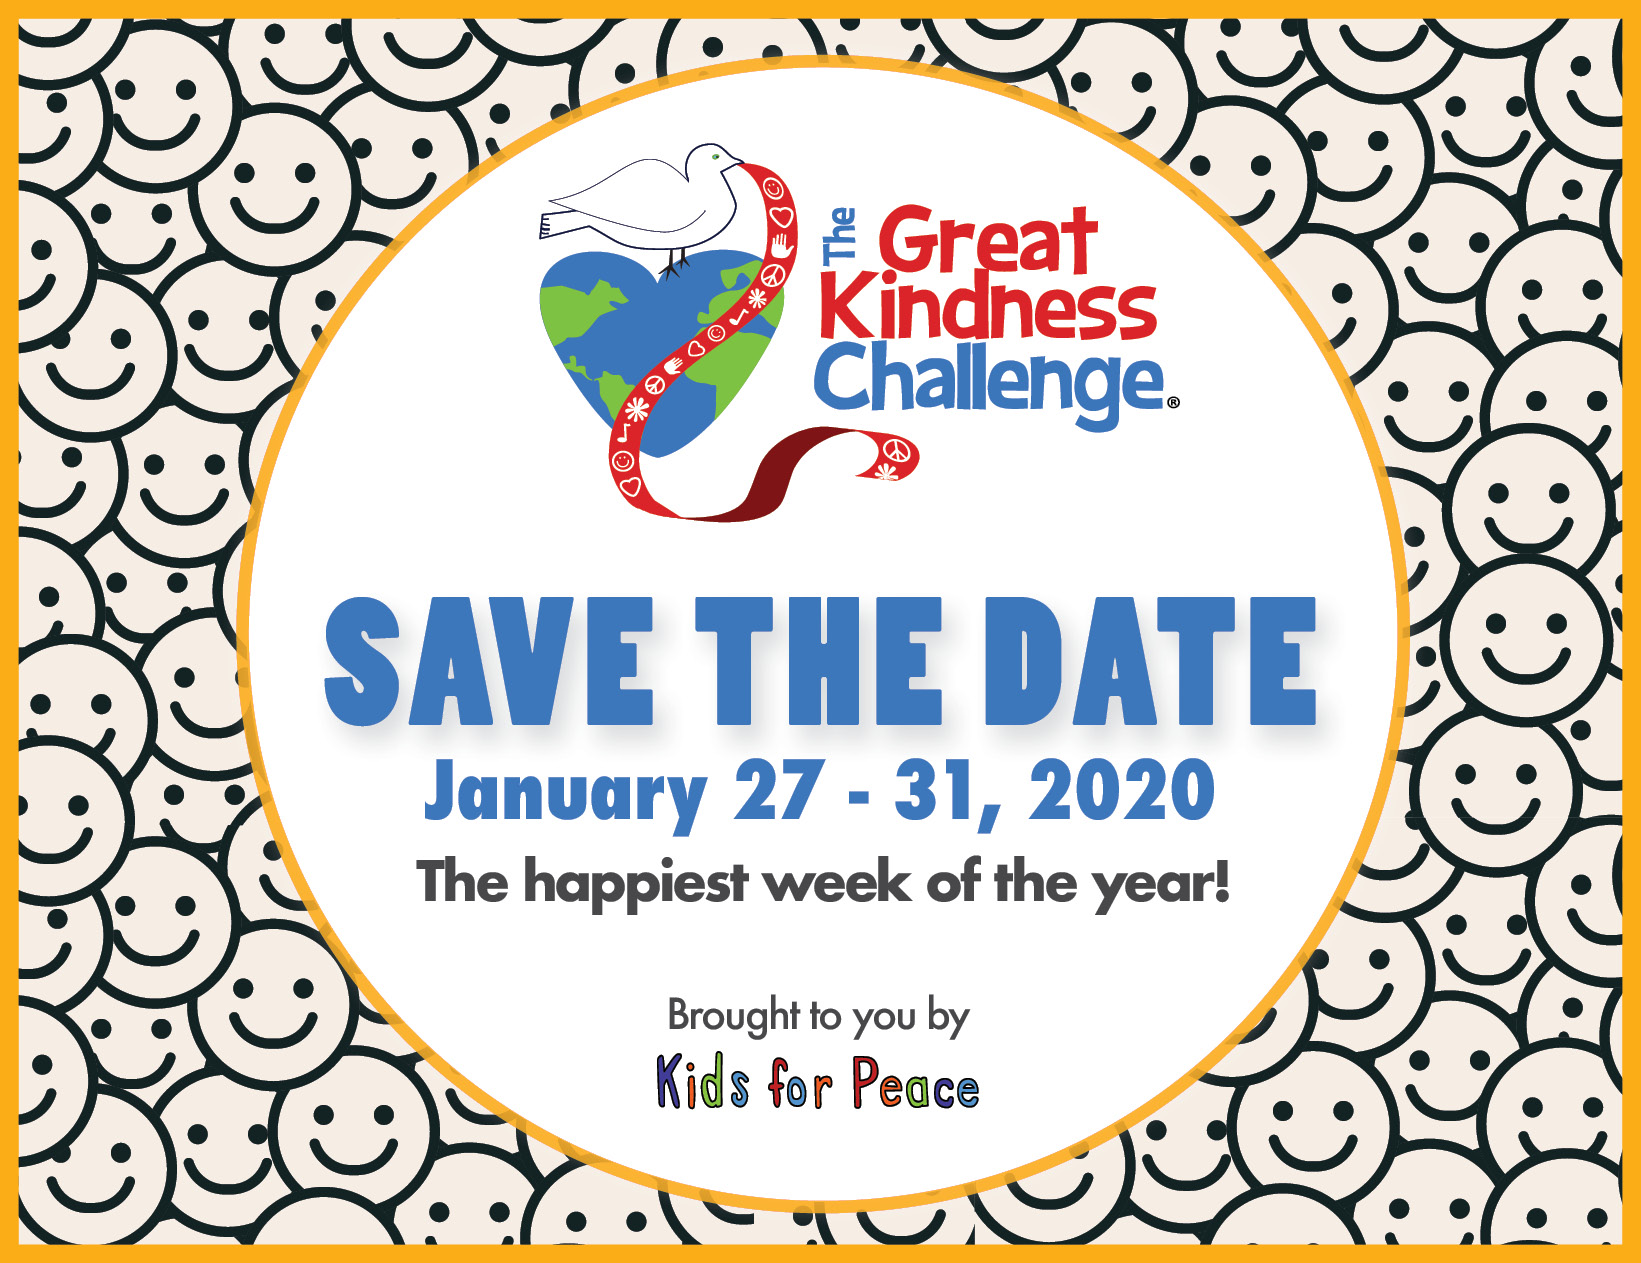 Great Kindness Challenge 2020 Save the Date